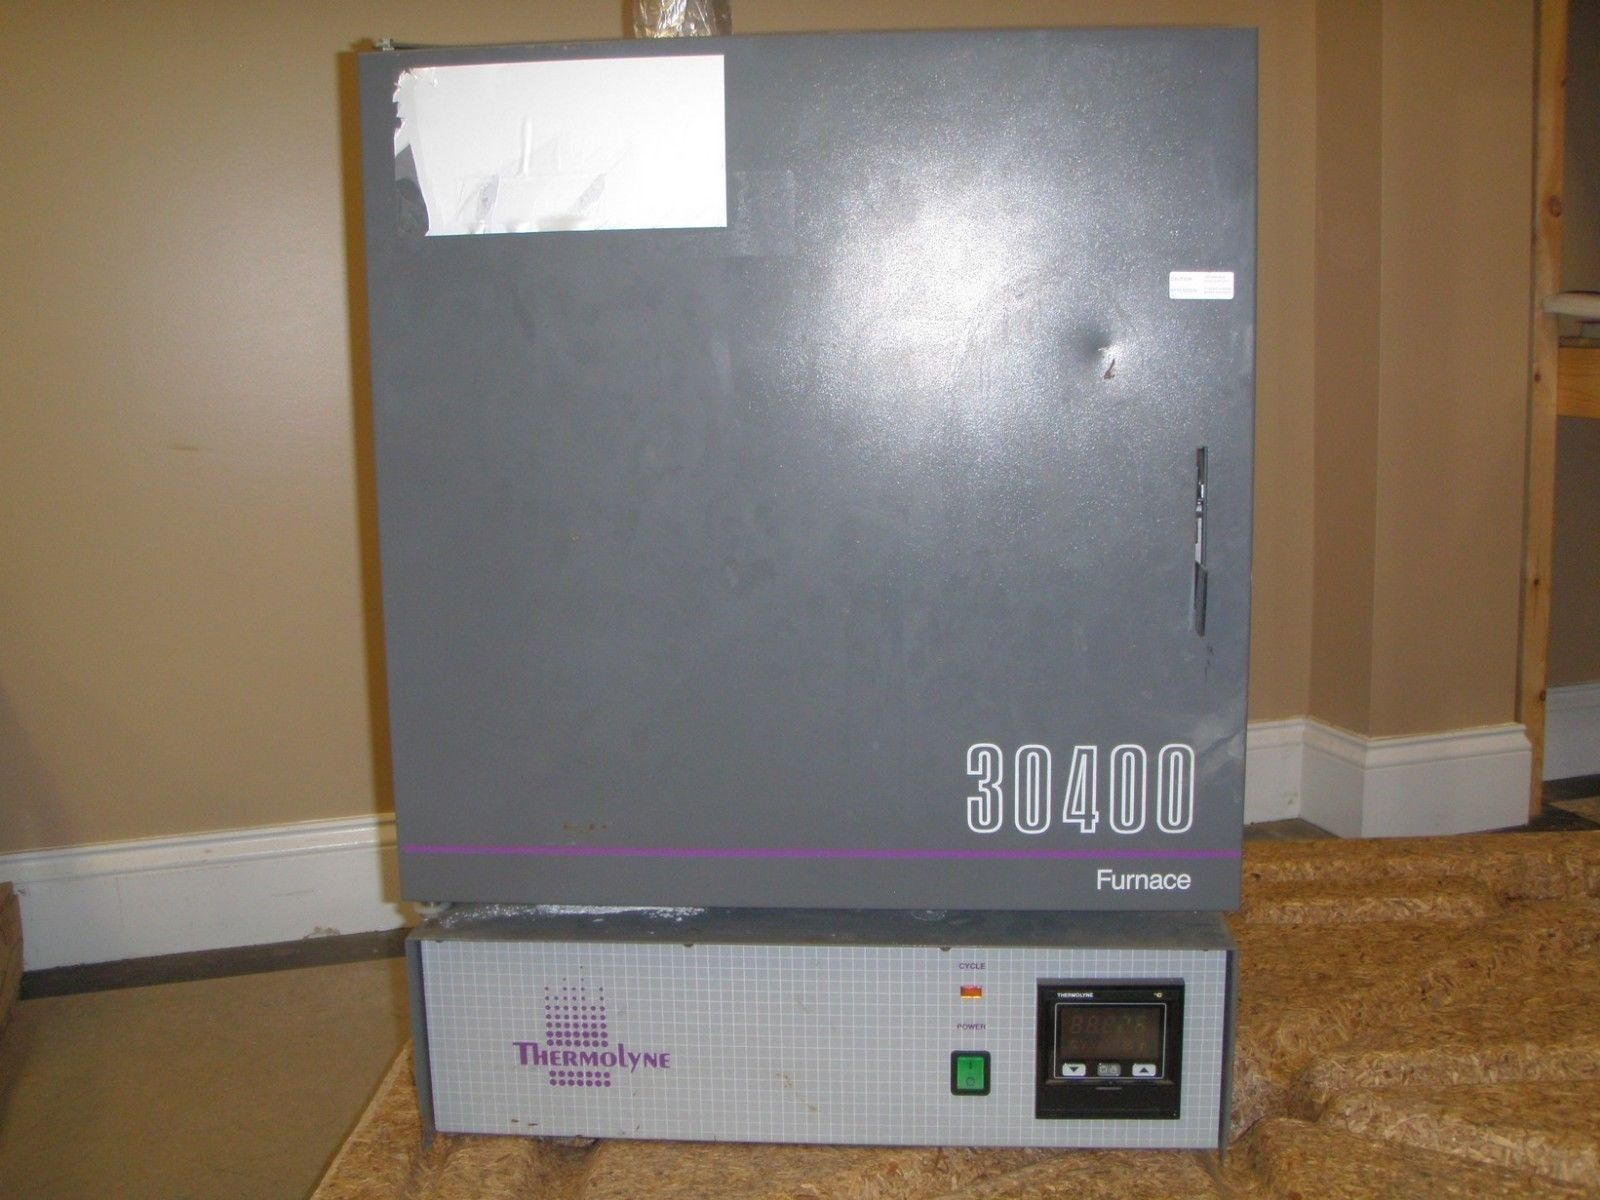 Thermolyne Furnace Model 30400